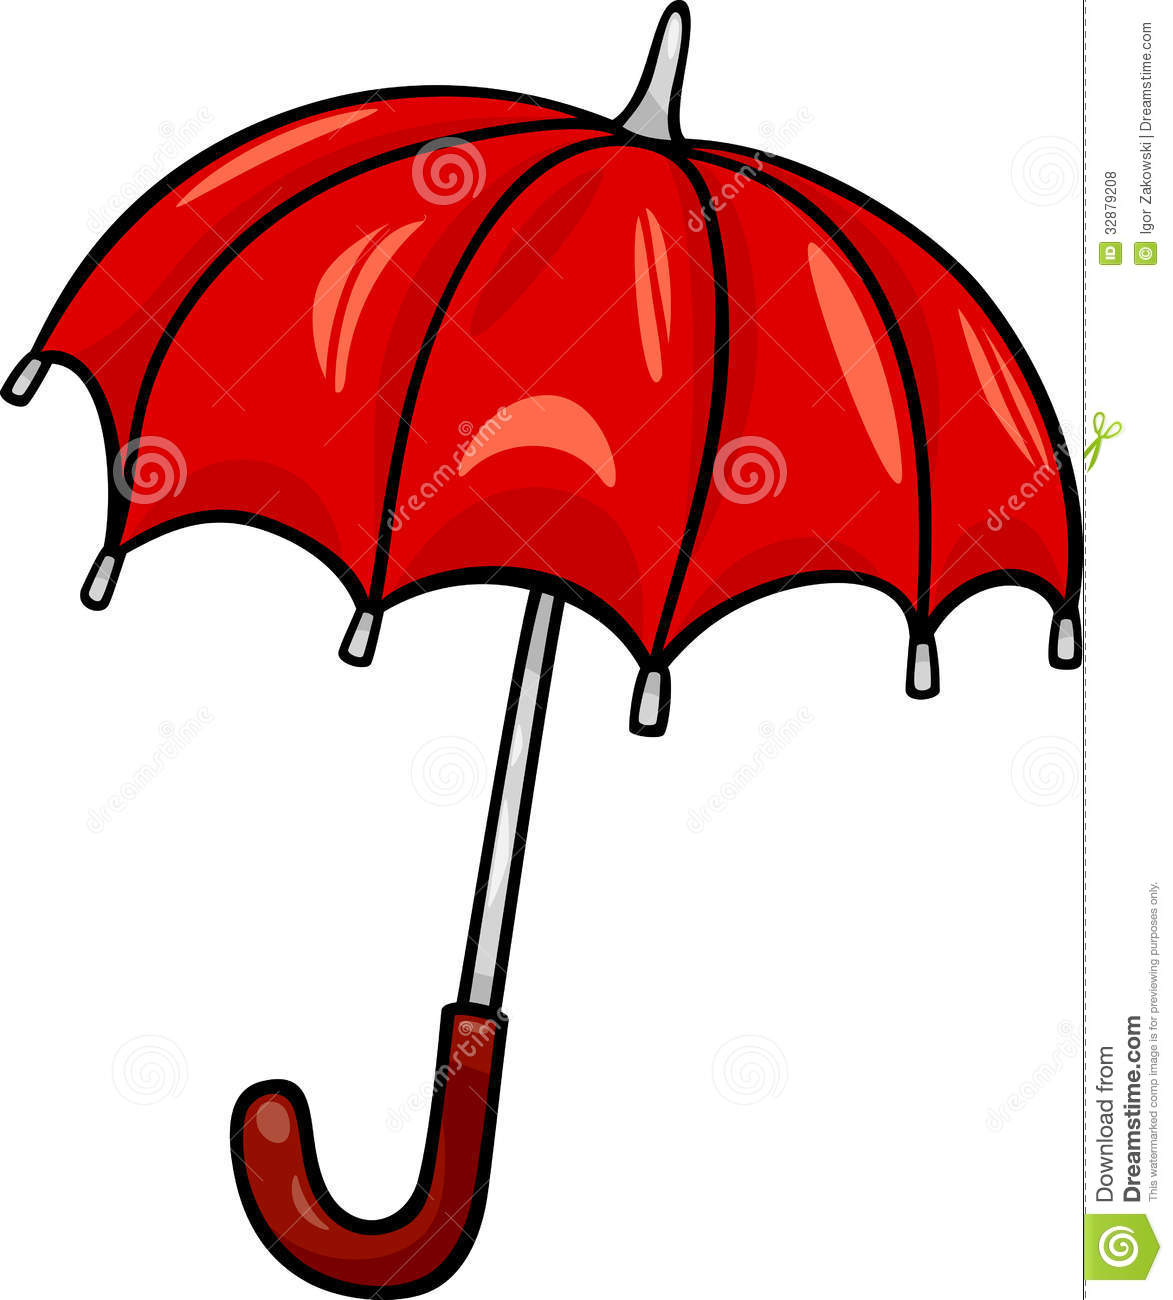 Umbrella Clip Art Cartoon Illustration Royalty Free Stock Photos ...